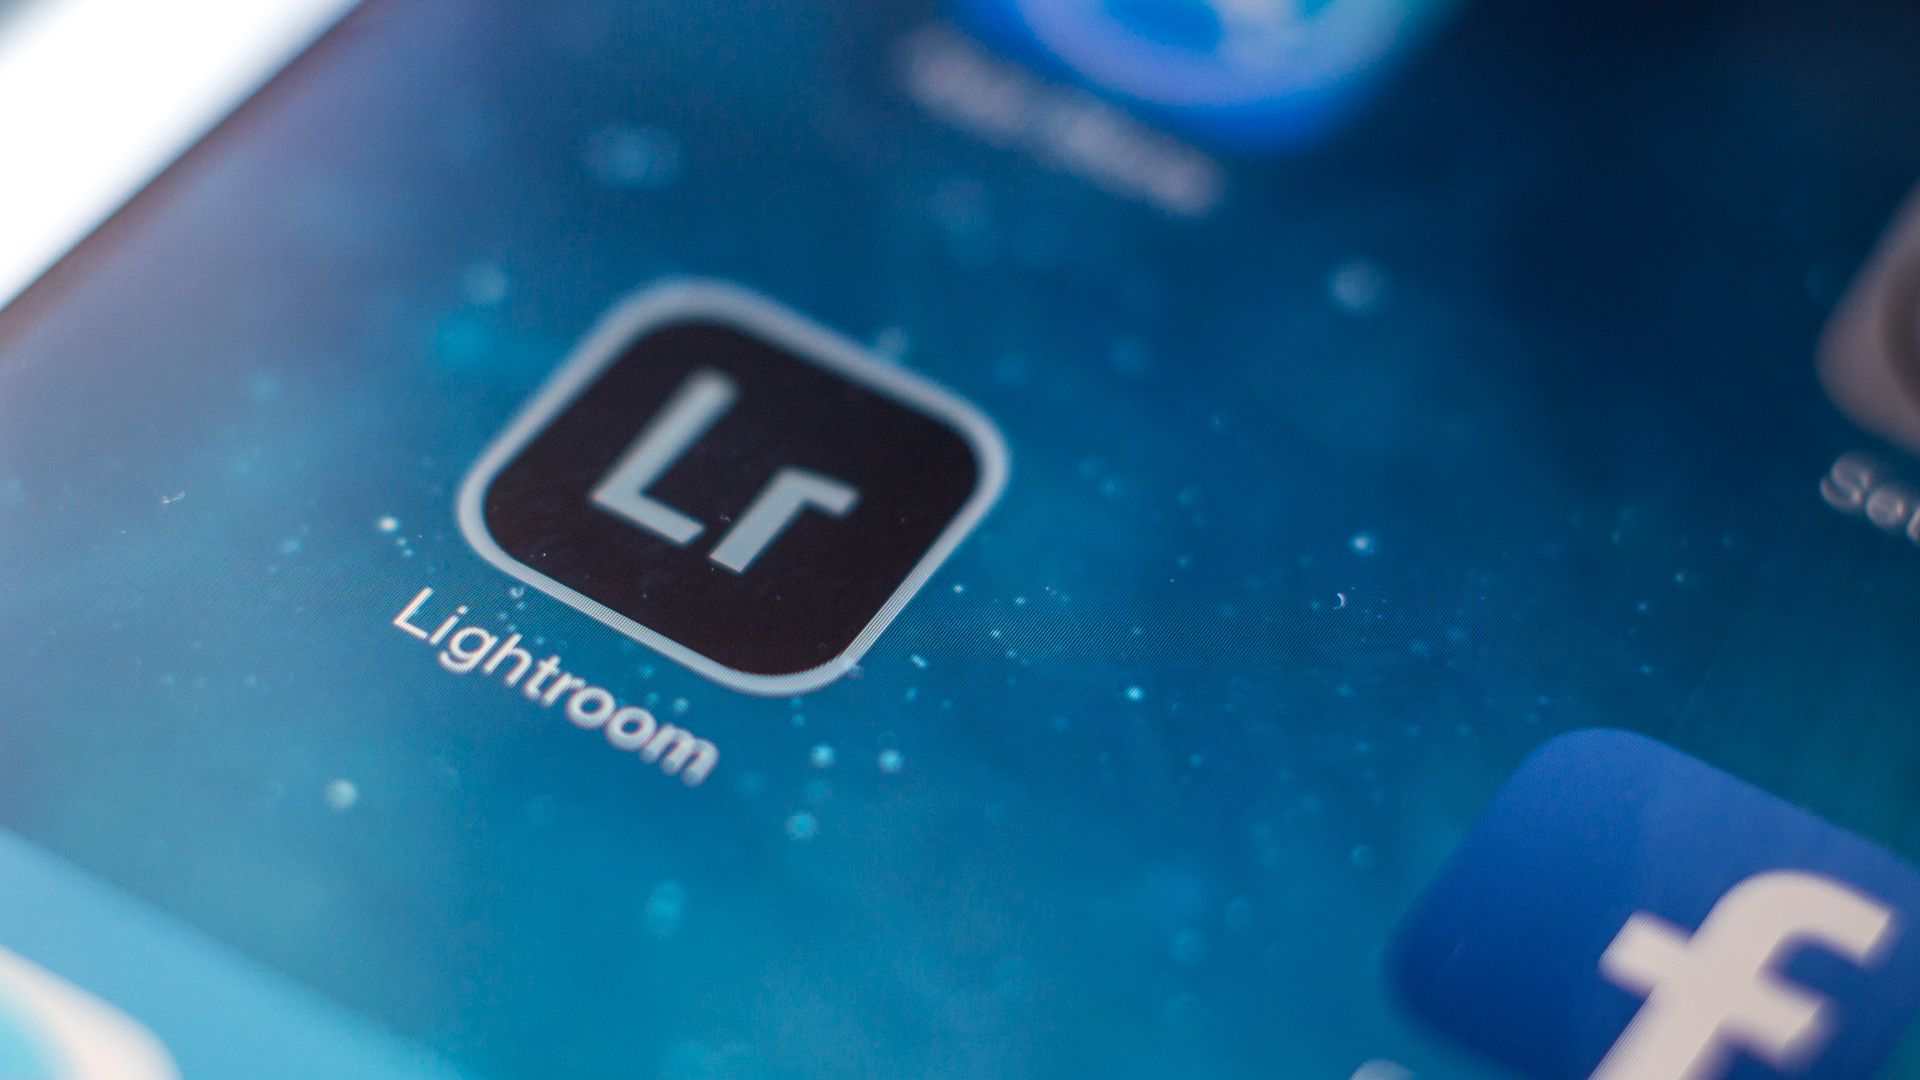 10 Best Adobe Lightroom Tutorials to Learn Course Online